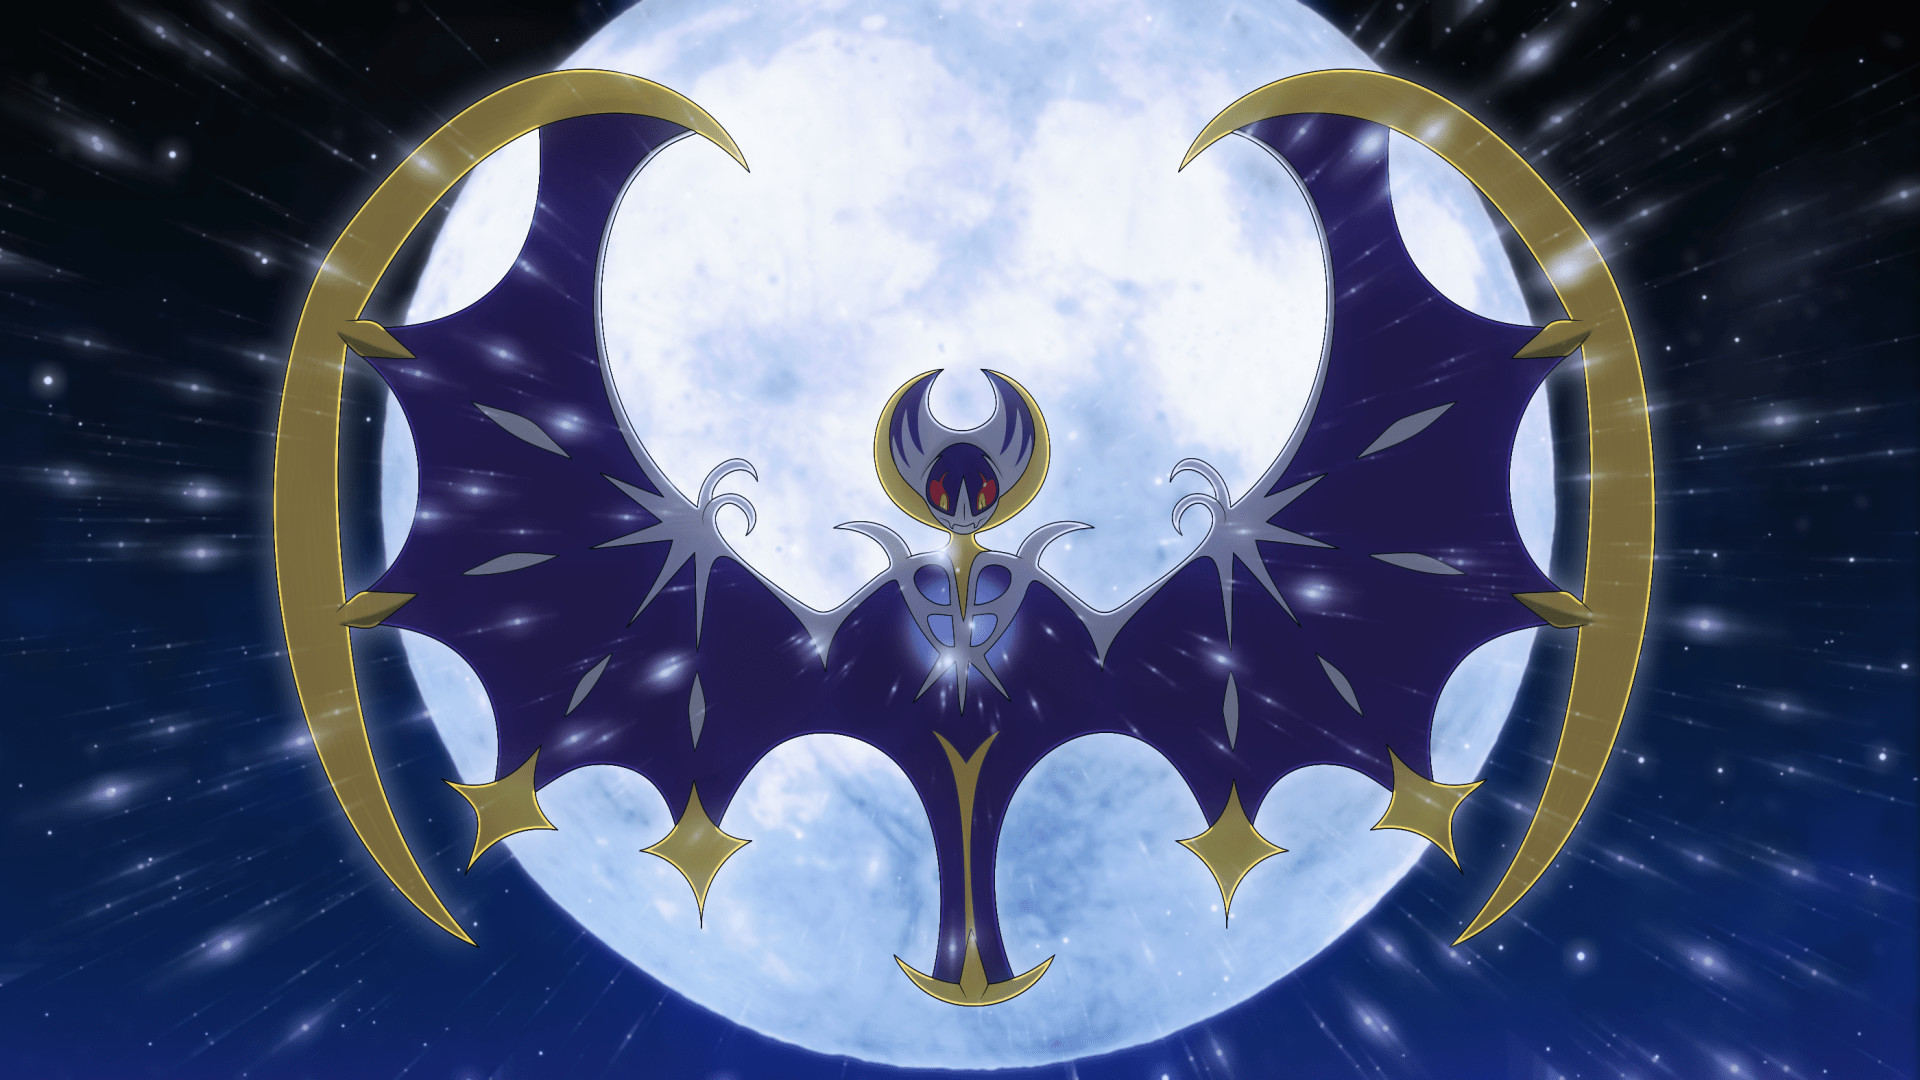 1920x1080 Pokemon Sun and Moon Pokemon Lunala 1080p HD Wallpaper Background